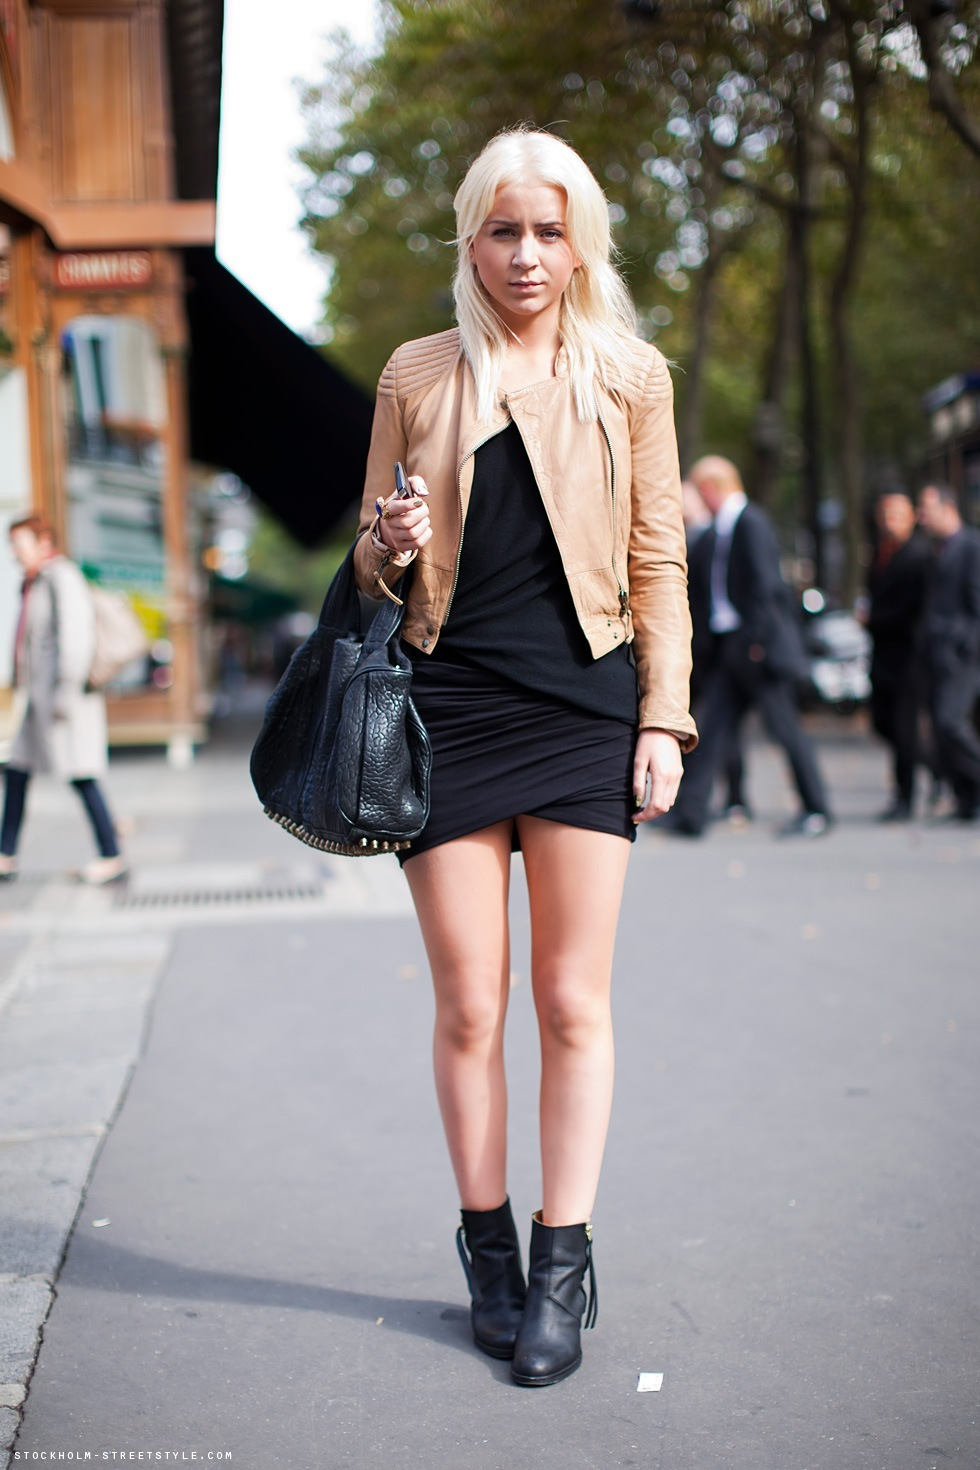 alexander wang, bag, beige, black dress, blonde